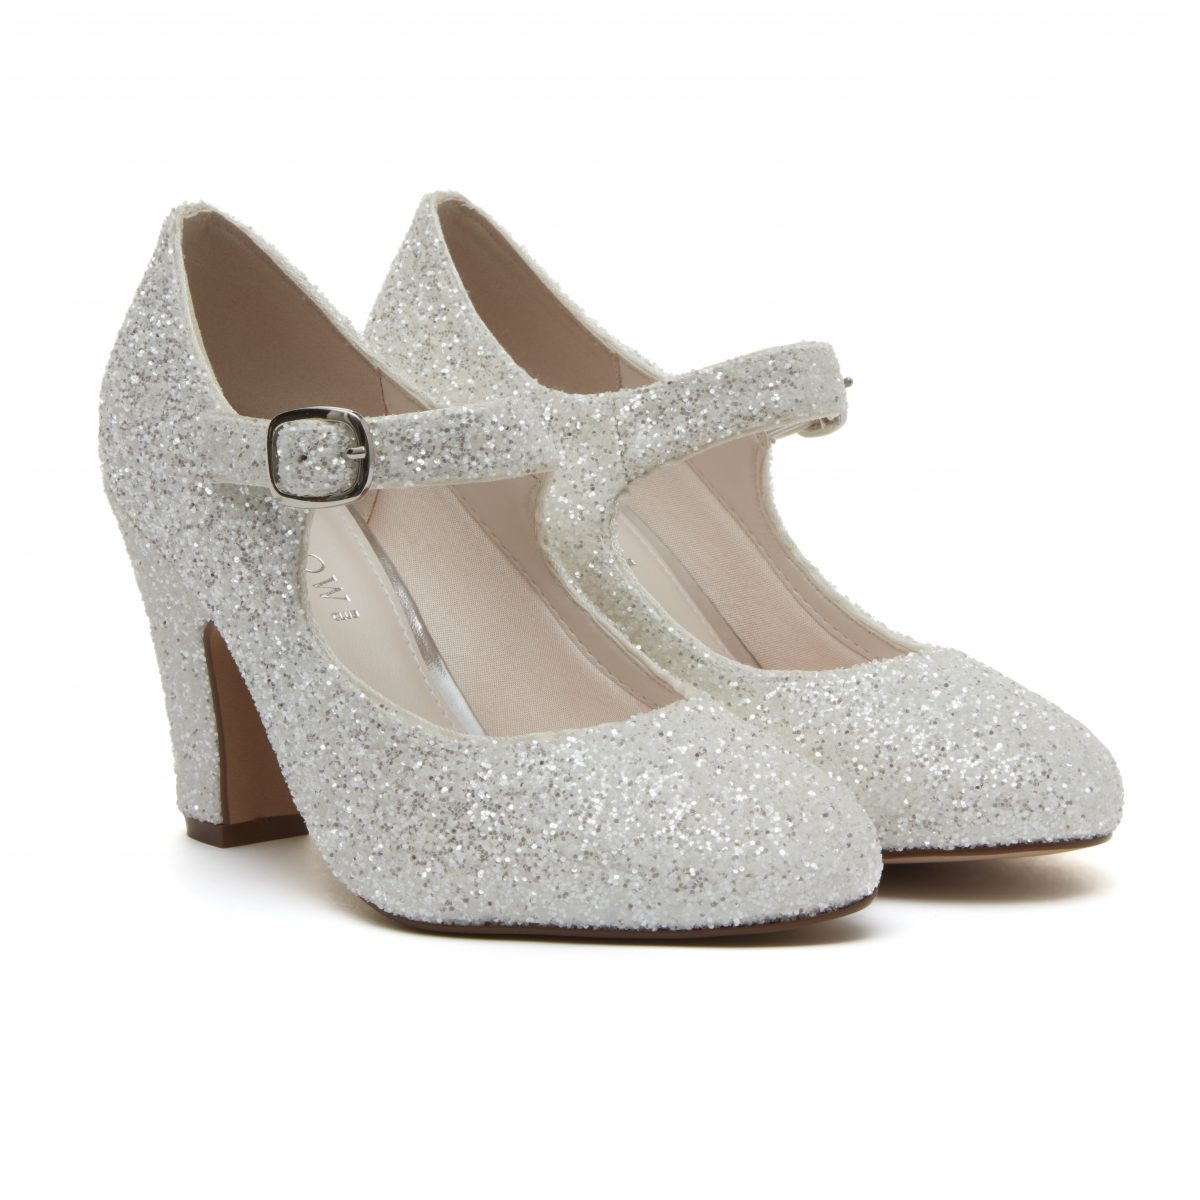 Rainbow Club Madeline Mary Jane Shoes - Snow Glitter 1